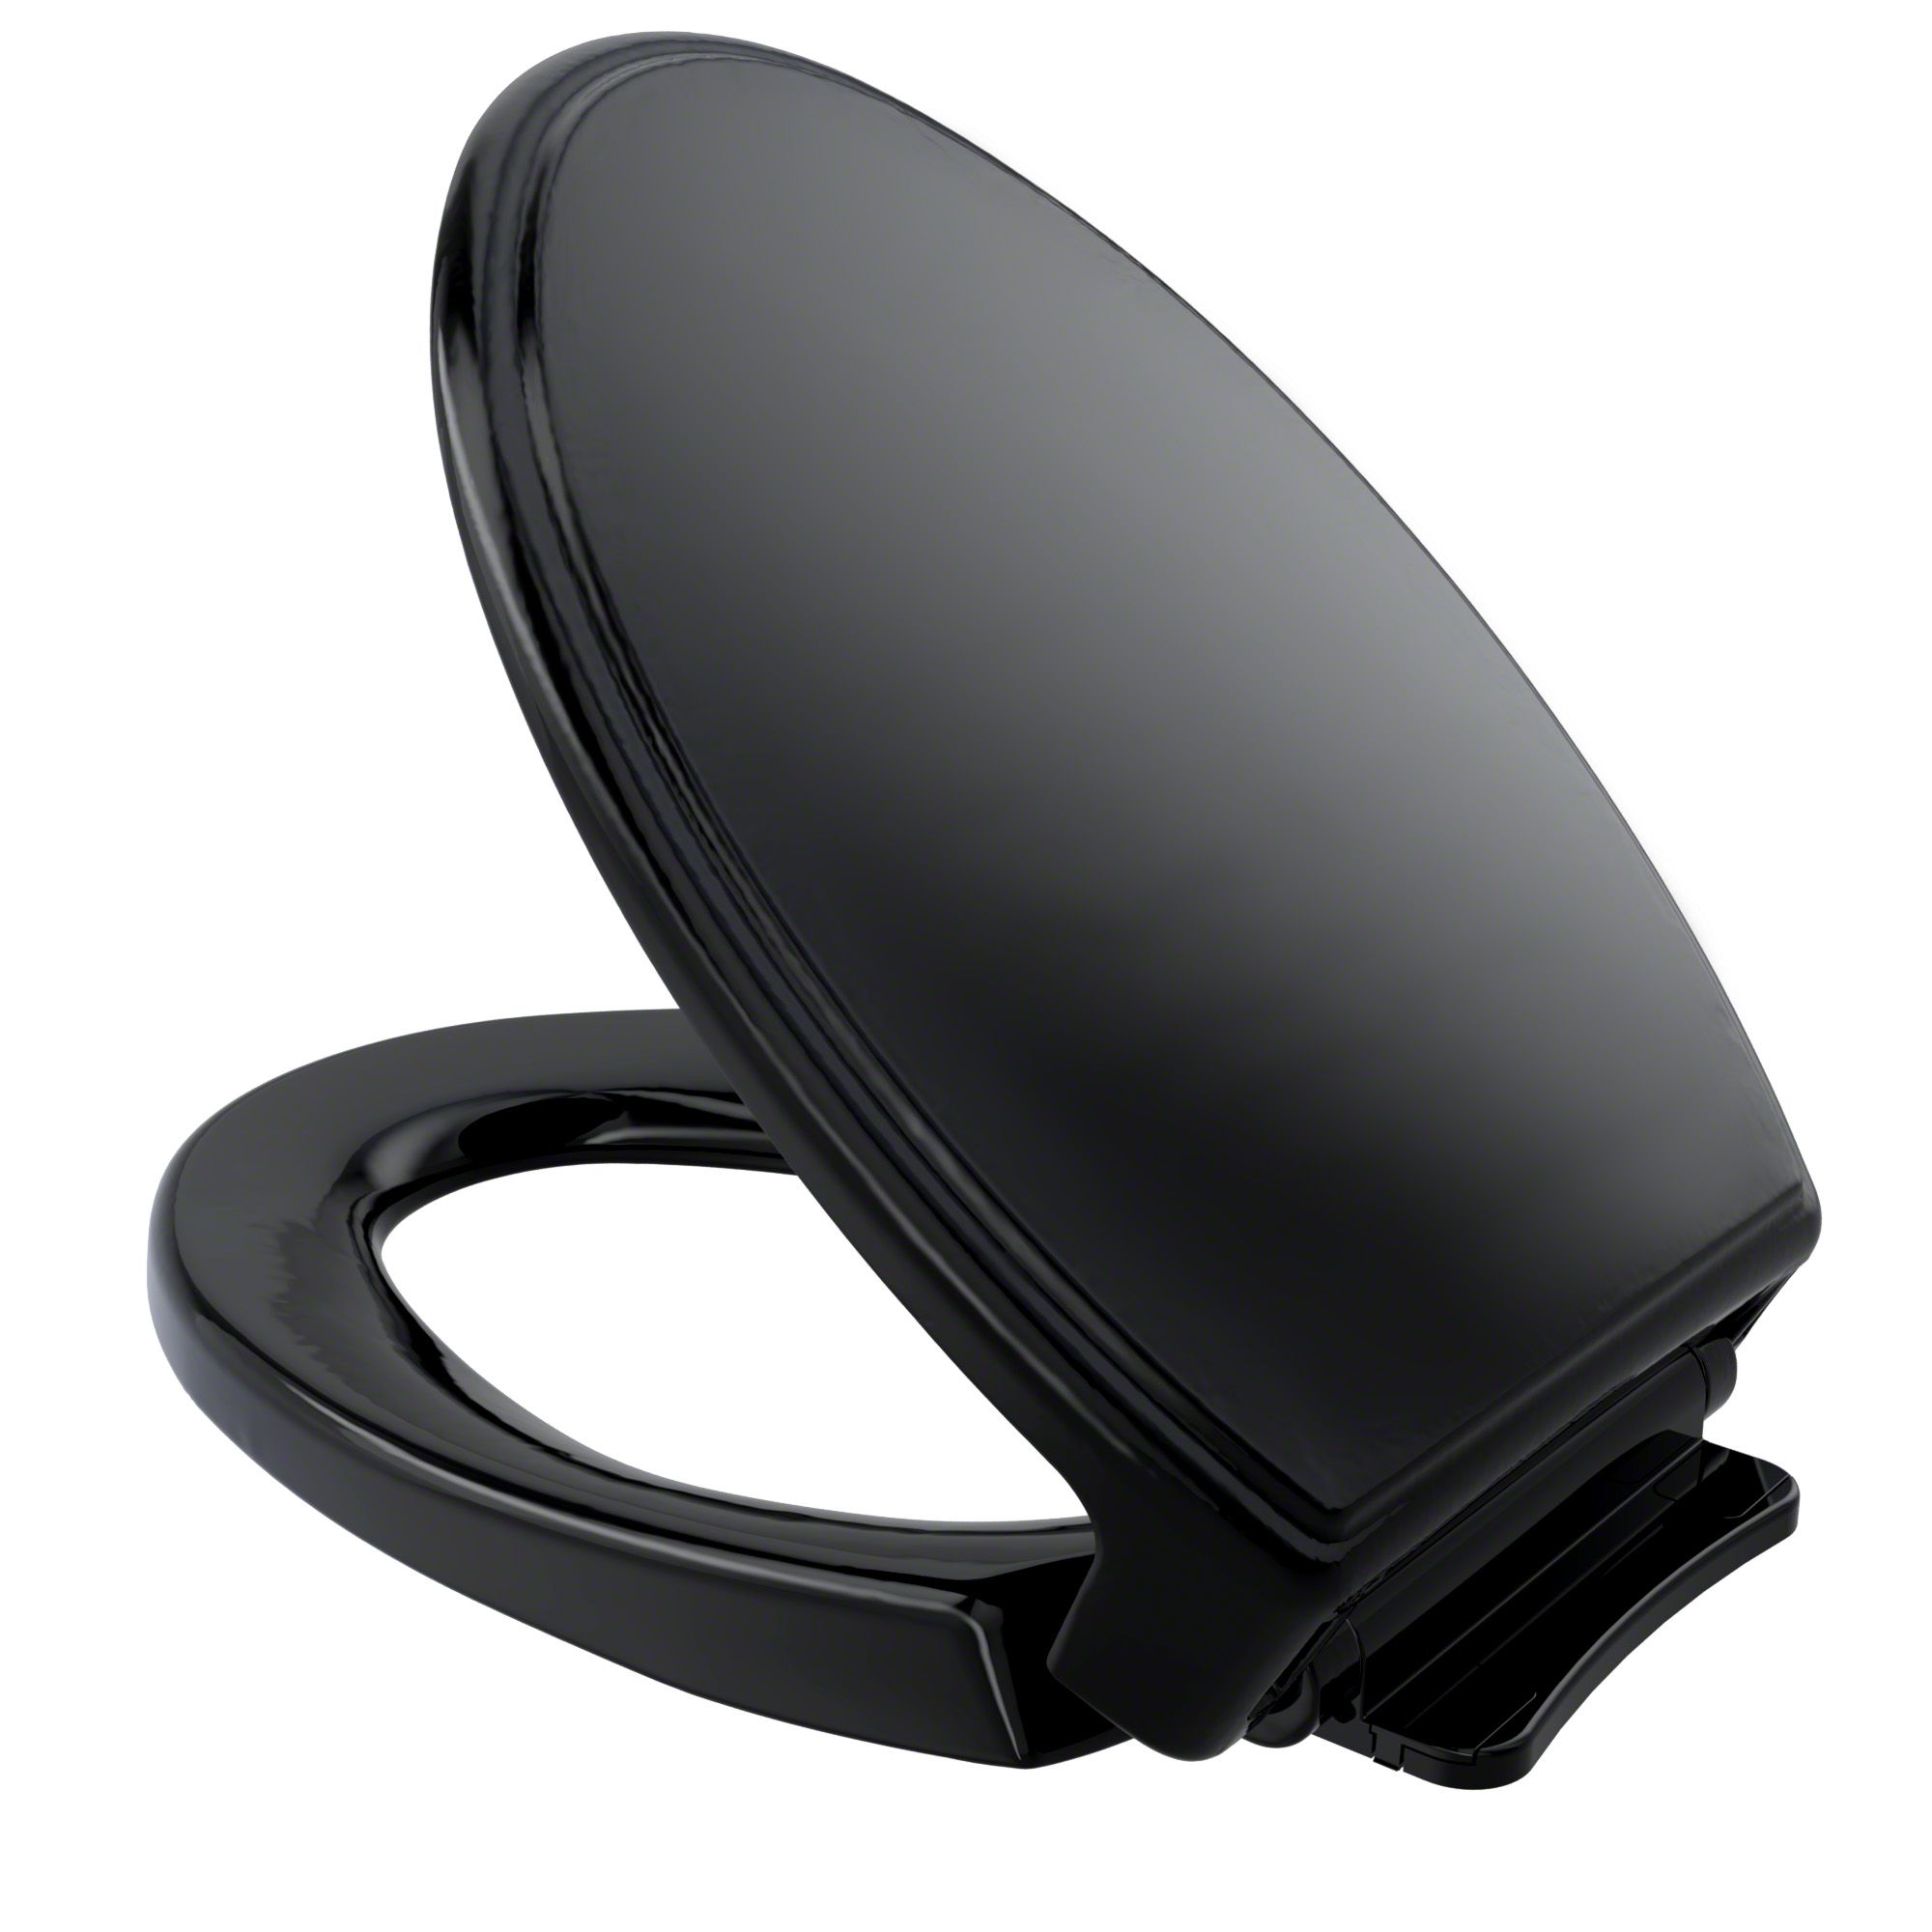 Toto Traditional Softclose Non Slamming Slow Close Elongated Toilet Seat And Lid Ebony Ss154 51 Elongated Toilet Seat Toilet Seat Ebony Toto soft close elongated toilet seat